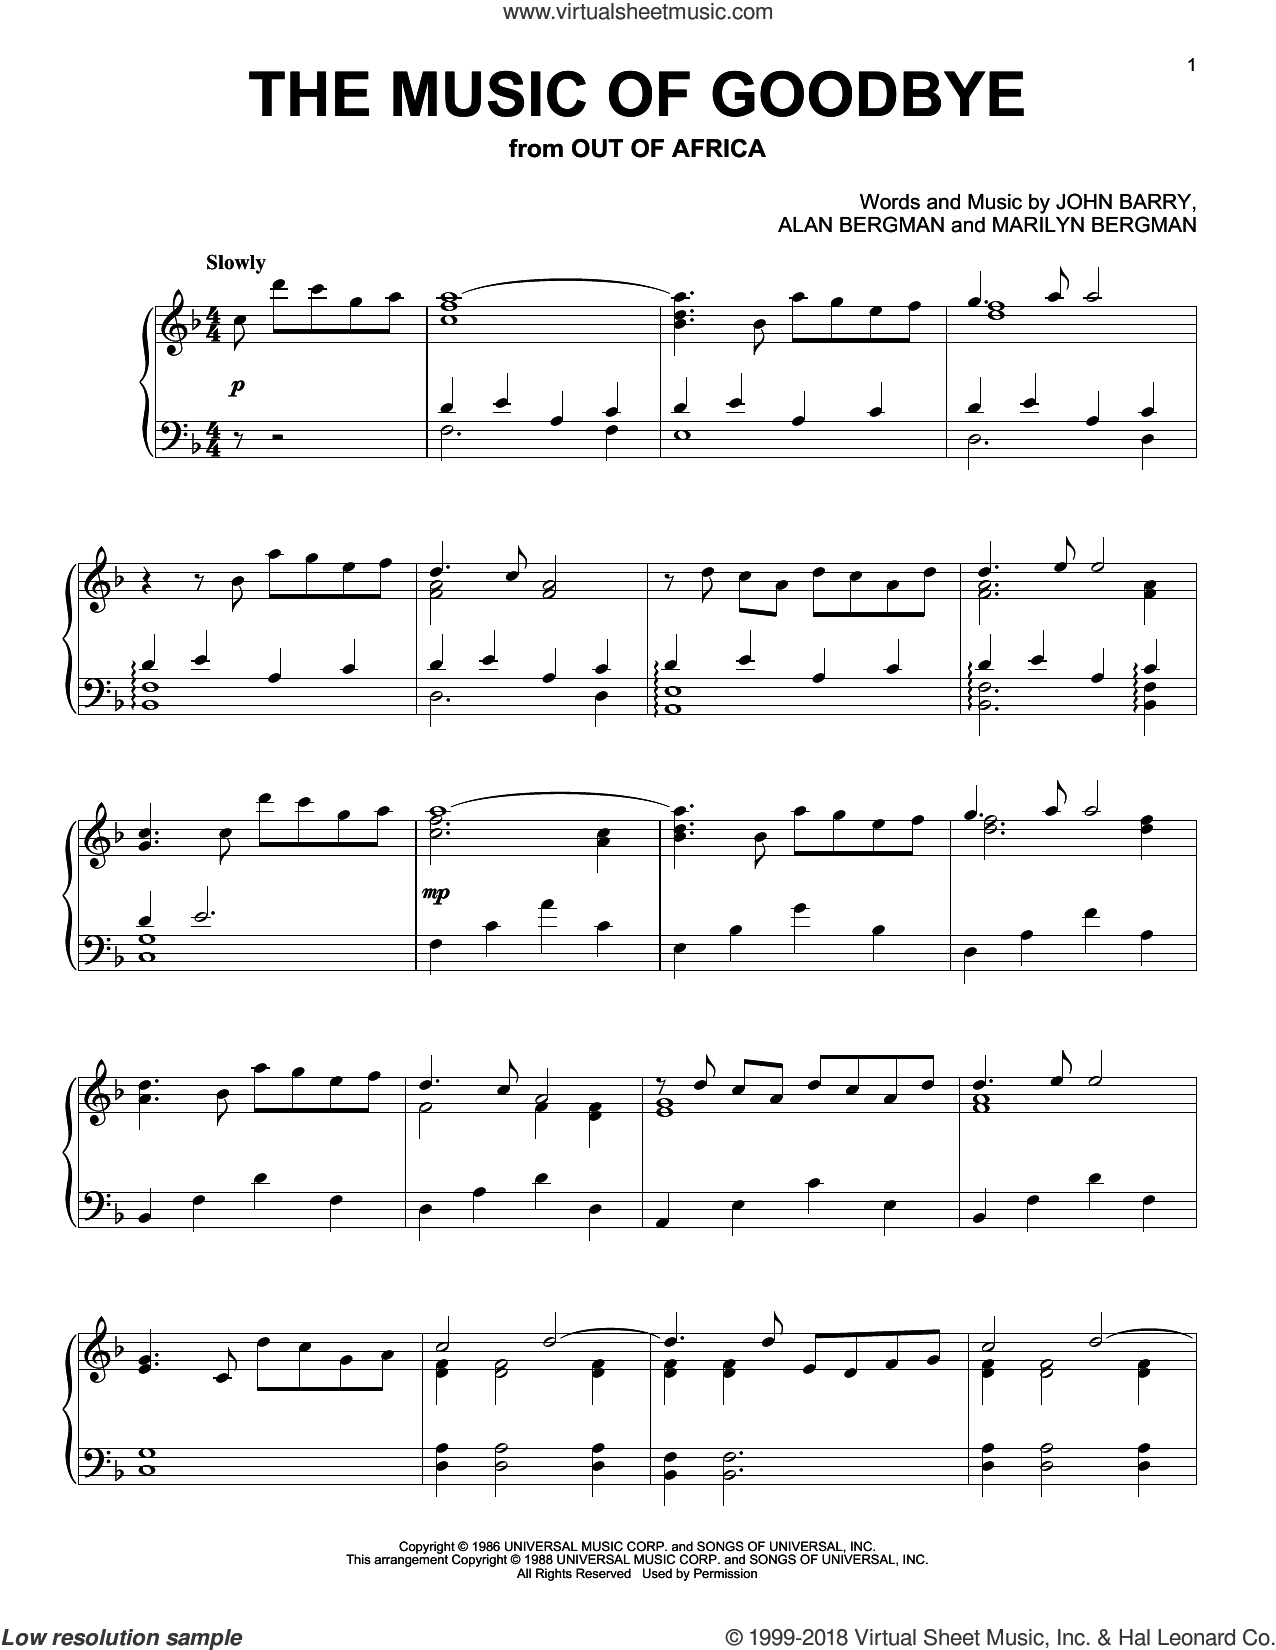 The Music Of Goodbye sheet music for piano solo by Marilyn Bergman